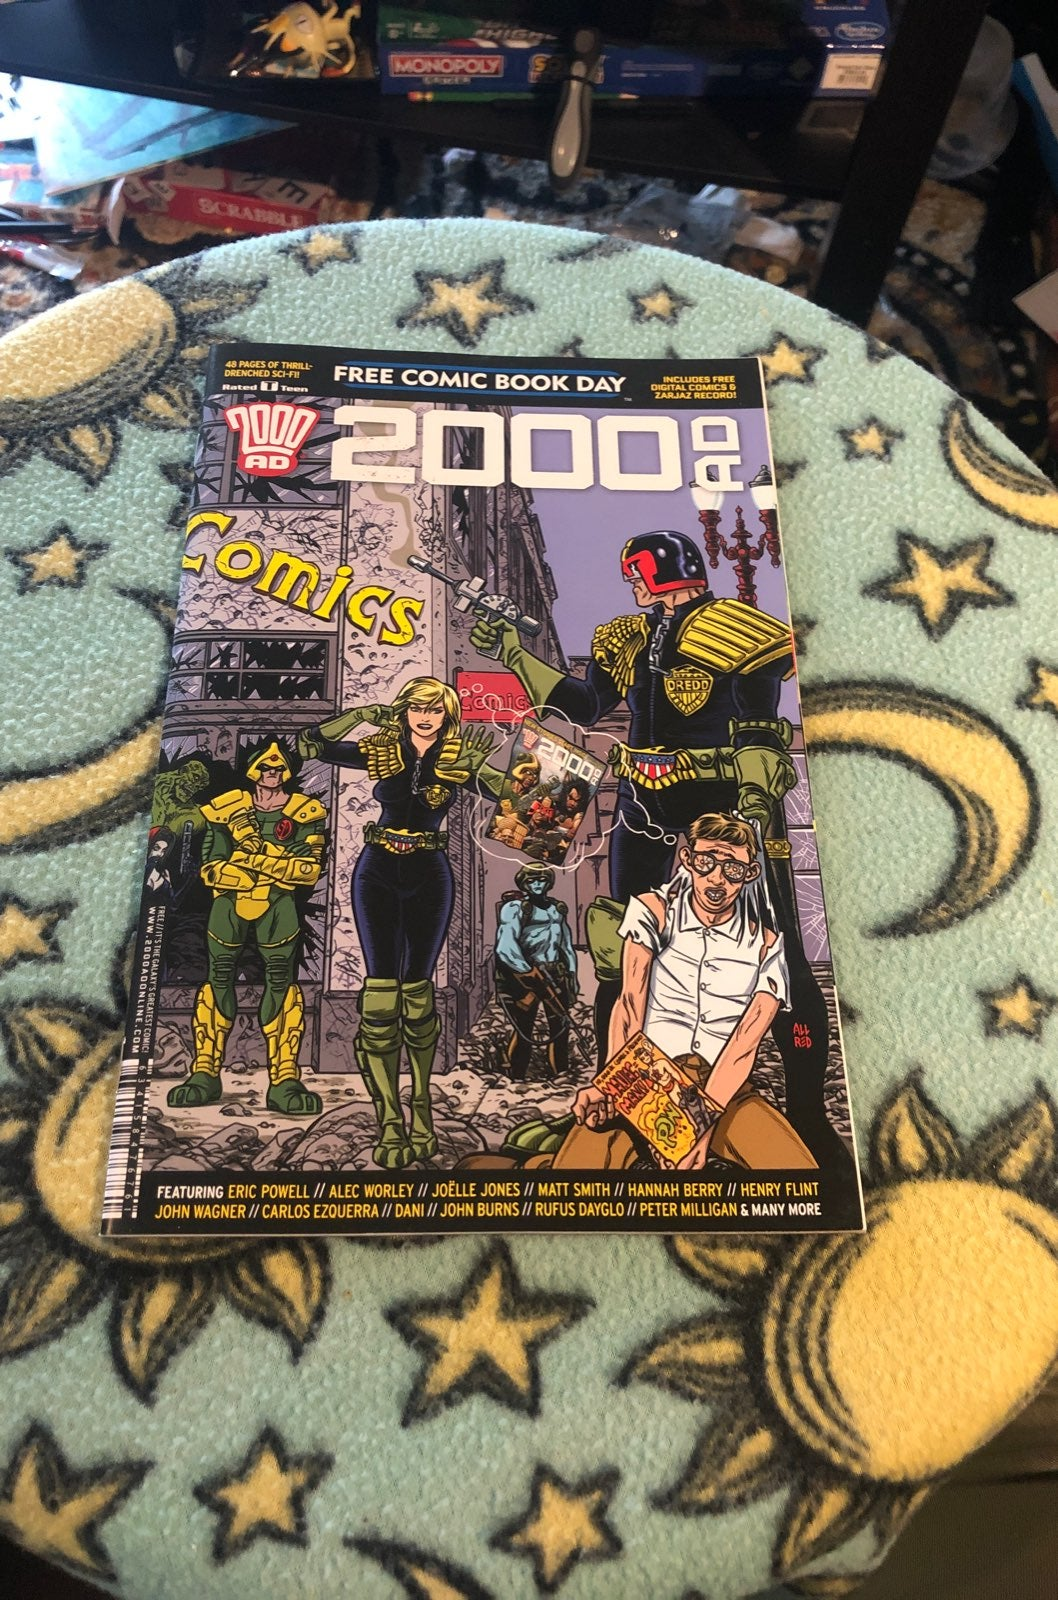 2000 AD Free Comic Book Day Issue